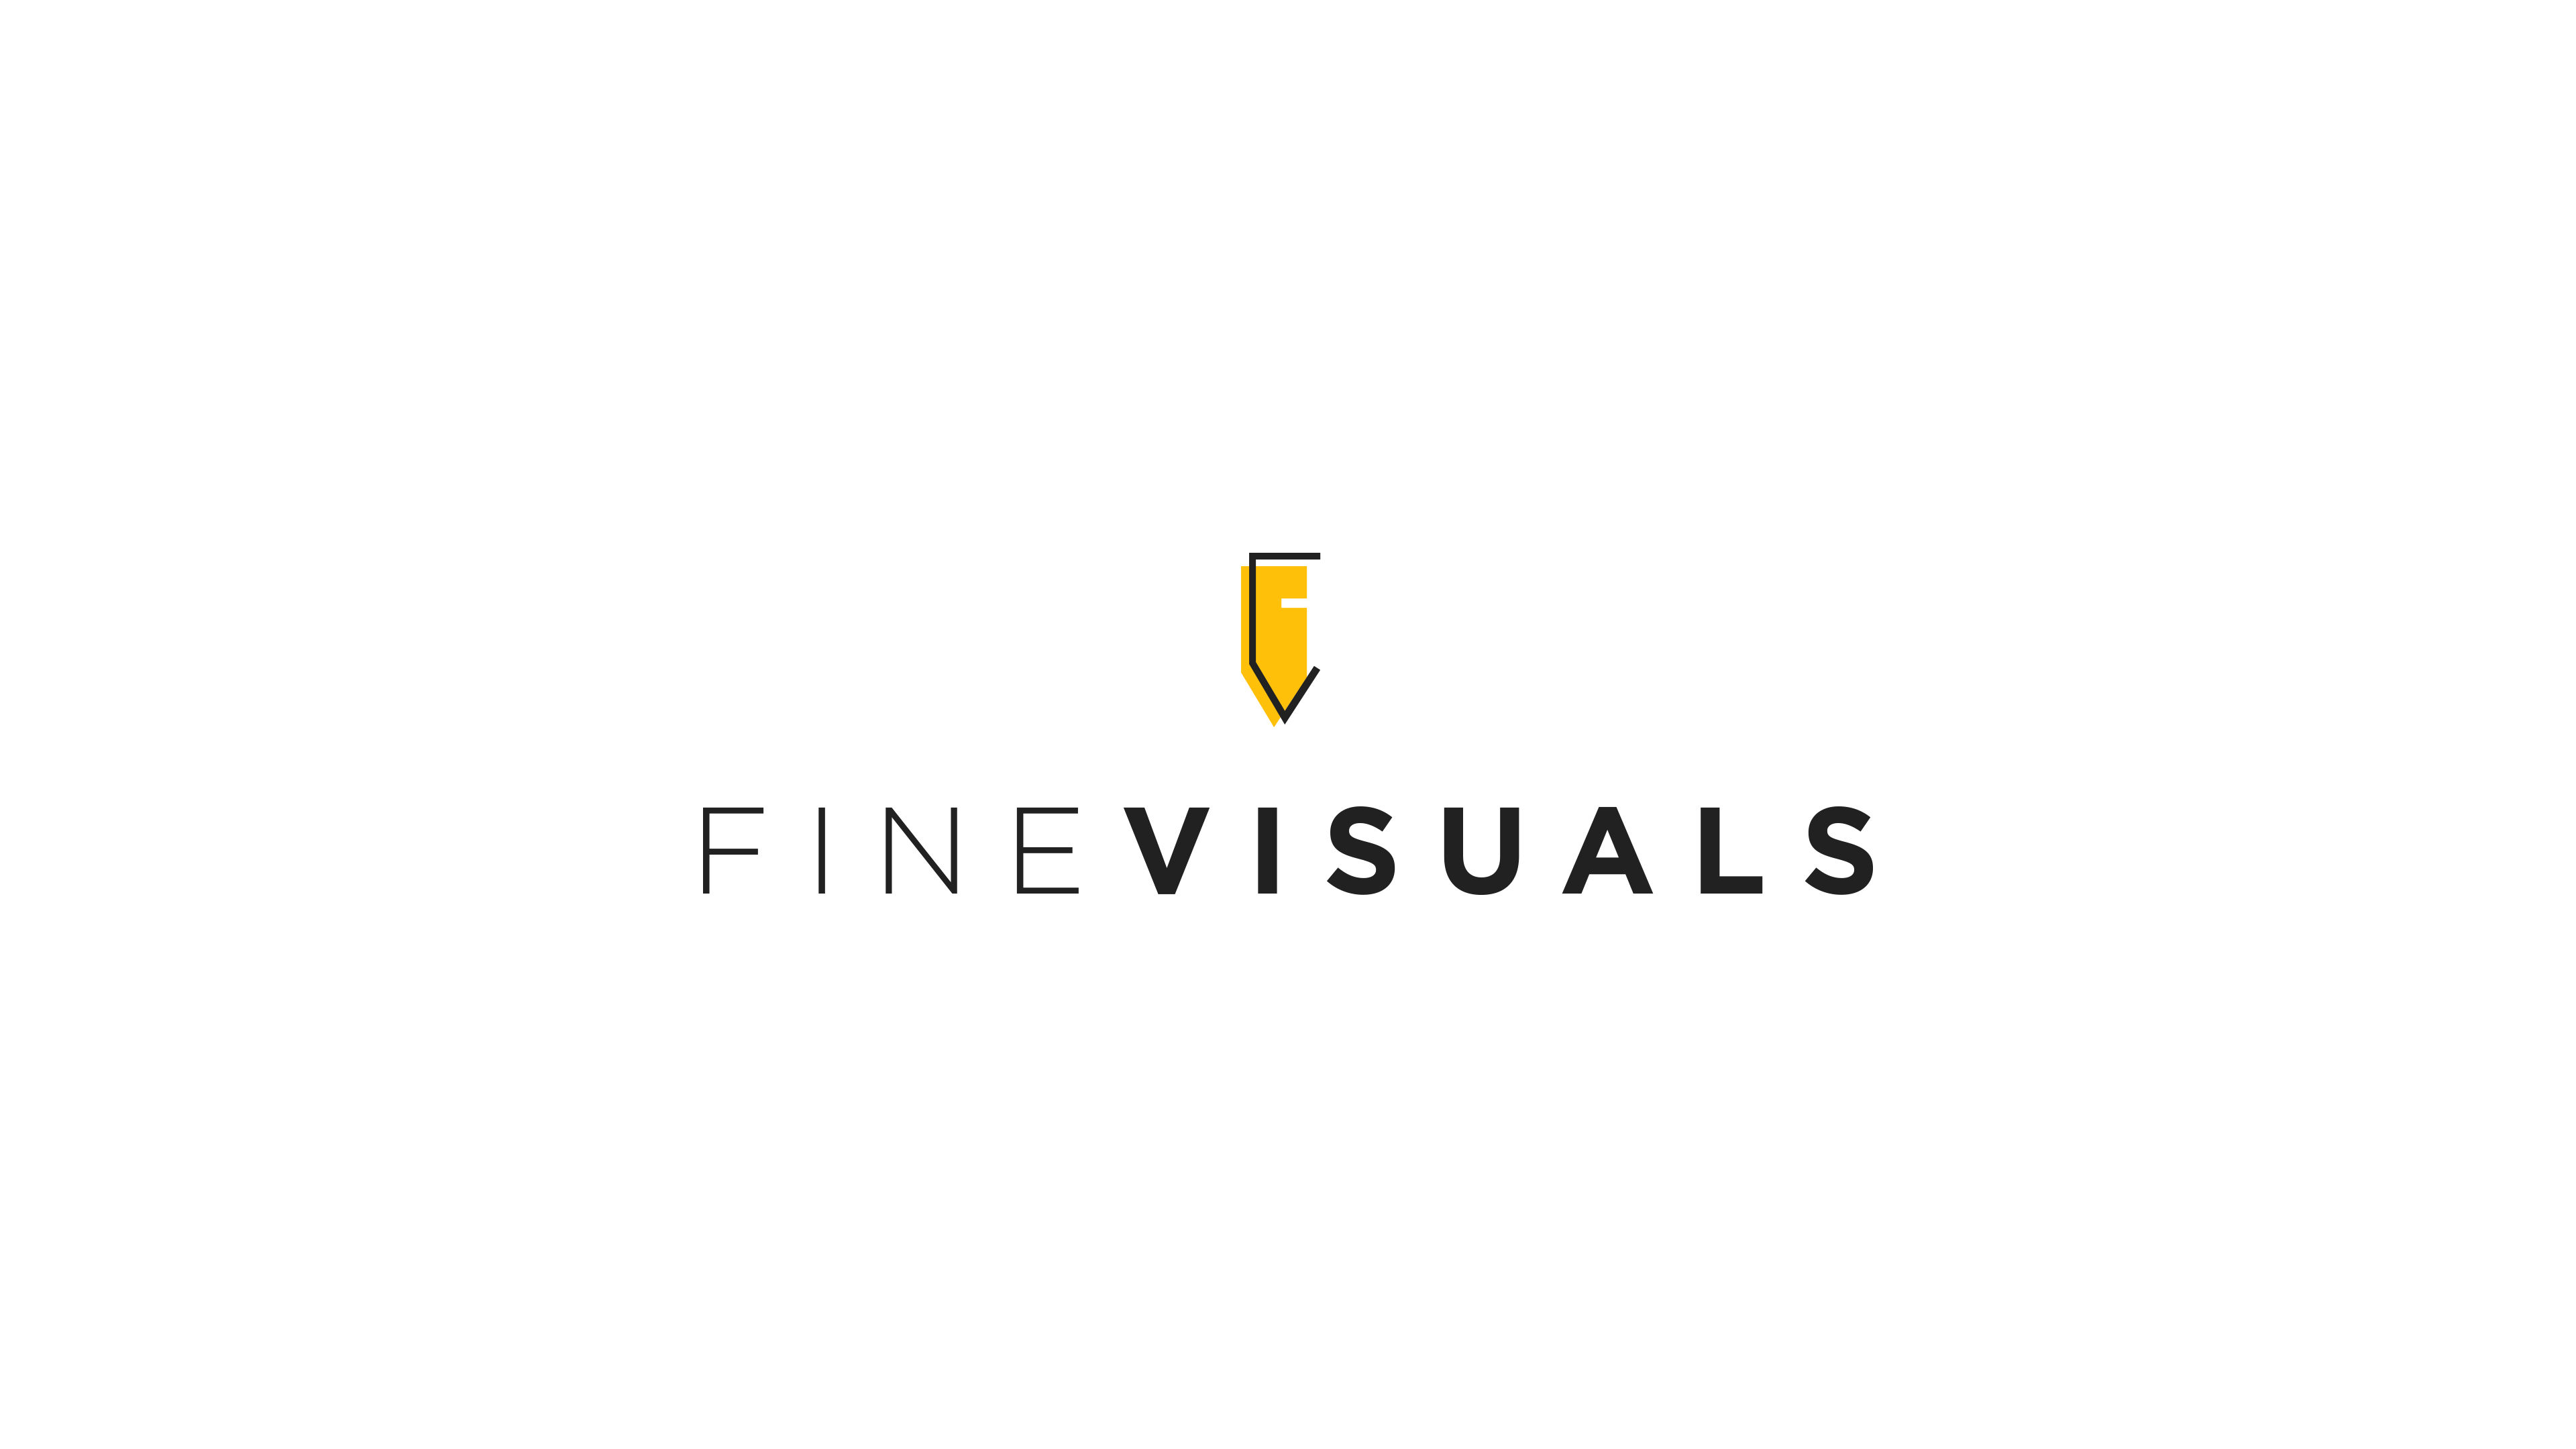 finevisuals-bg-4k